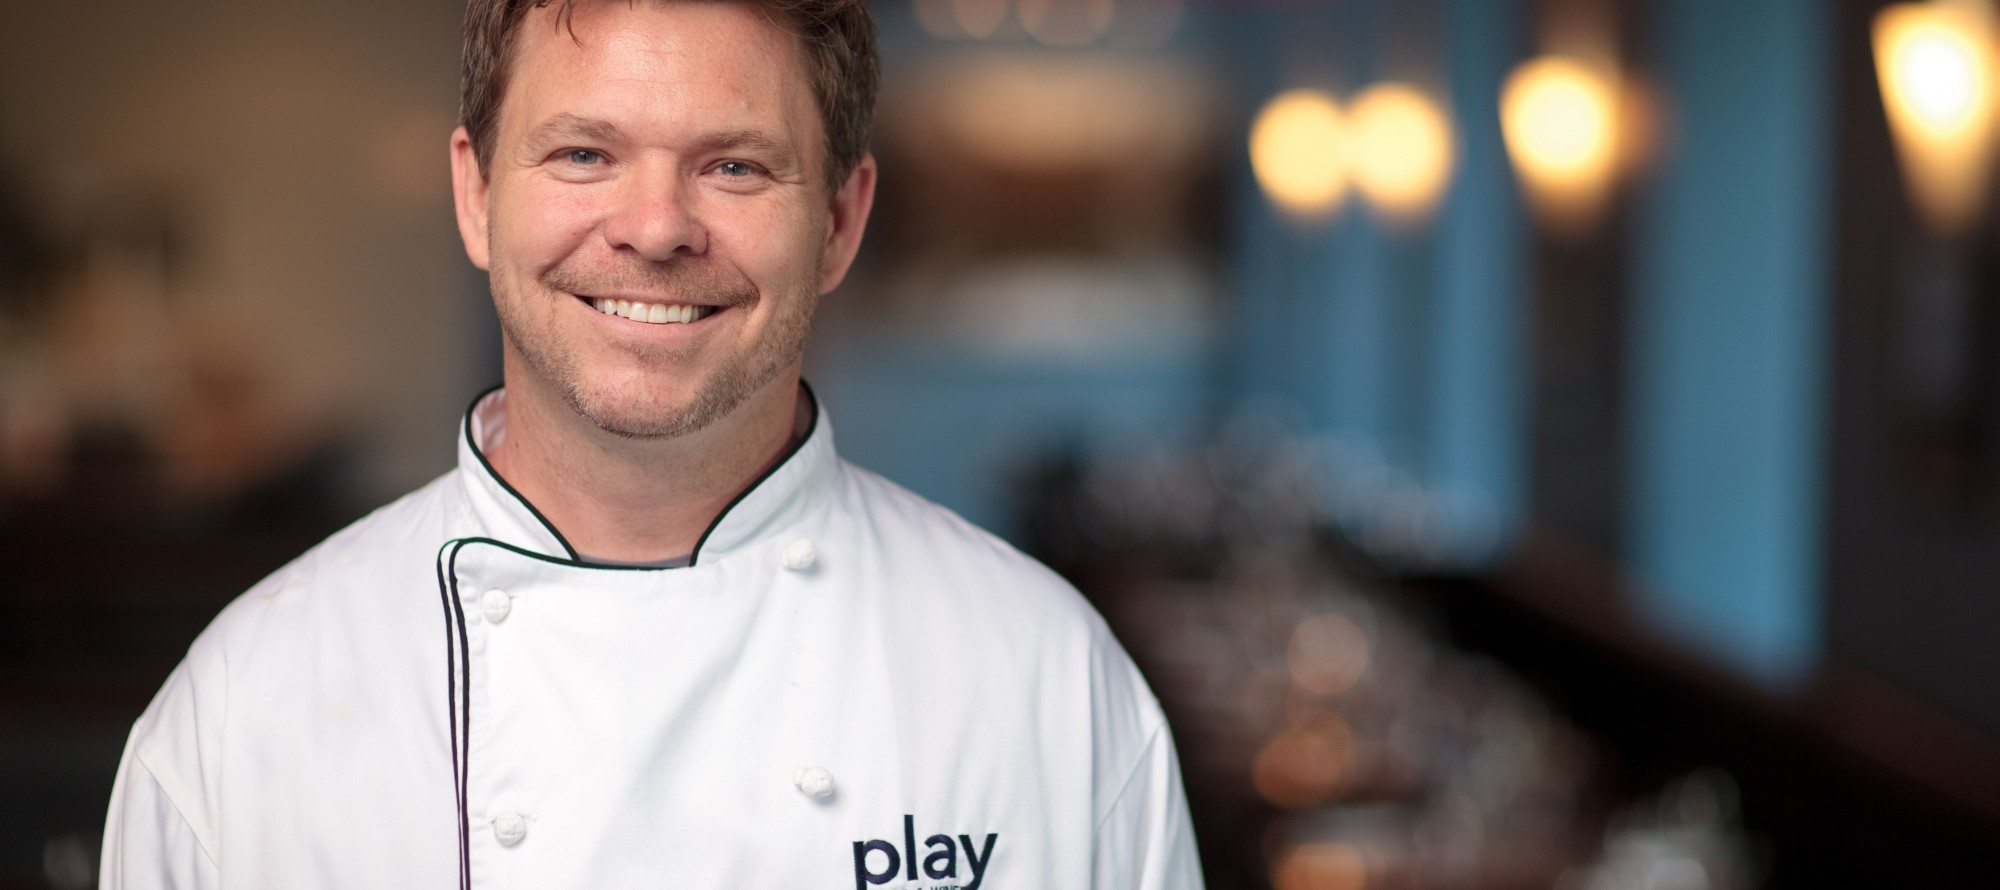 INSIDE SCOOP: Chef Mike Moffatt talks about gezellig, Steve Beckta's third restaurant, opening in Westboro later this year